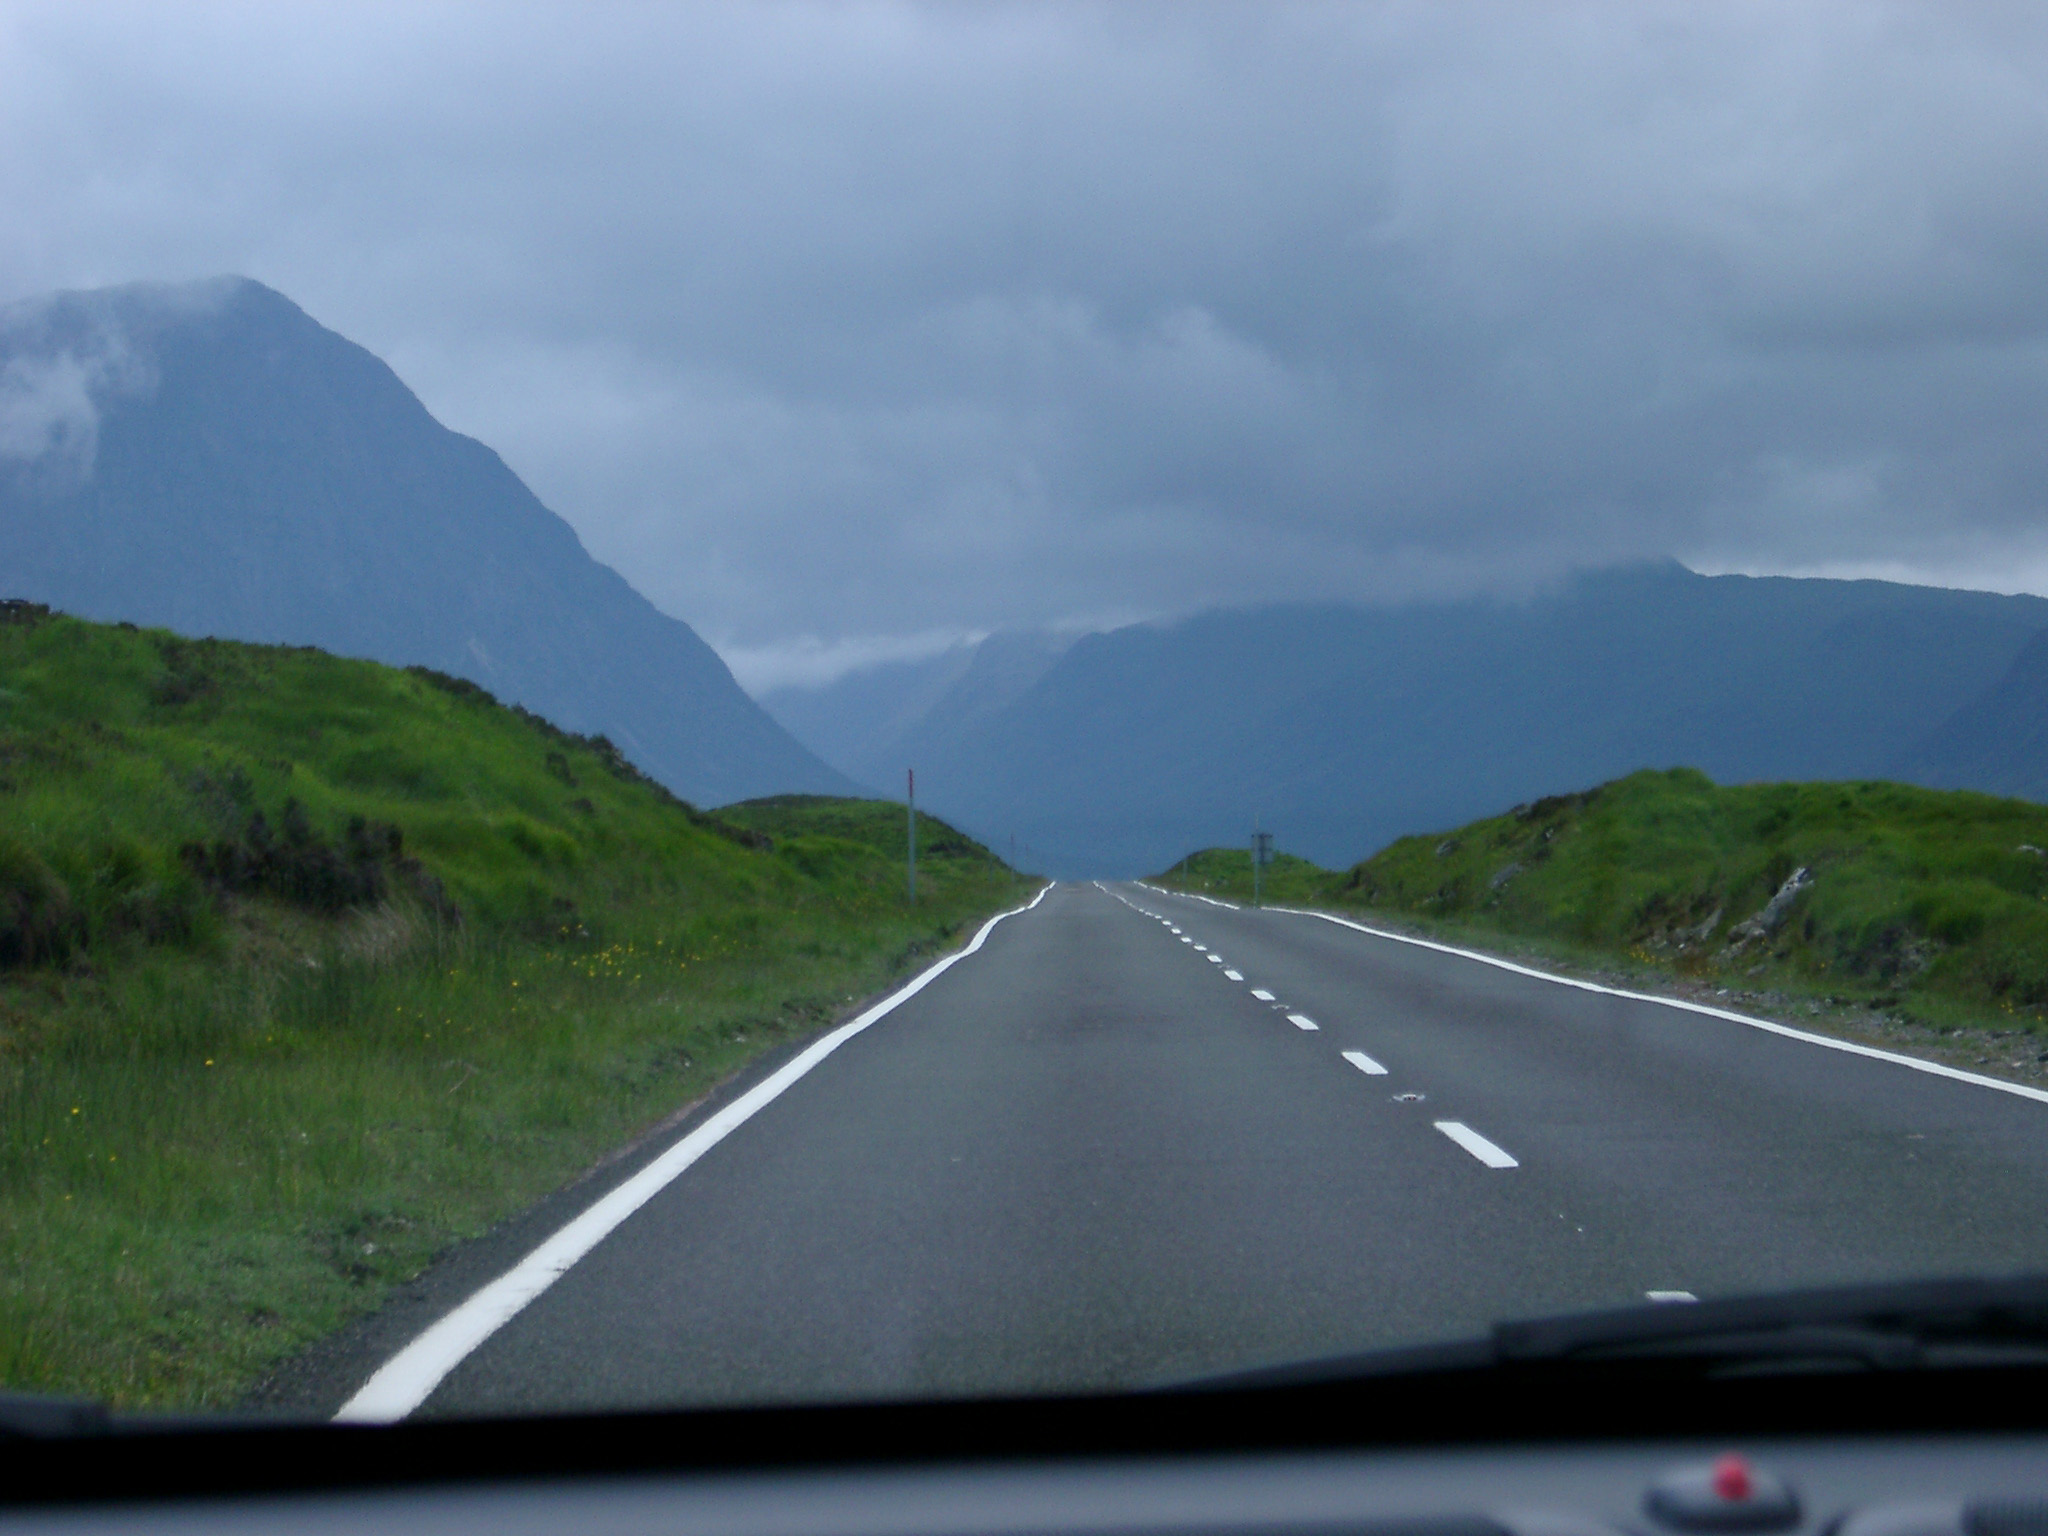 View through the windshield of a car of a tarred road through the Scottish highlands with high mountain peaks on a cold overcast day